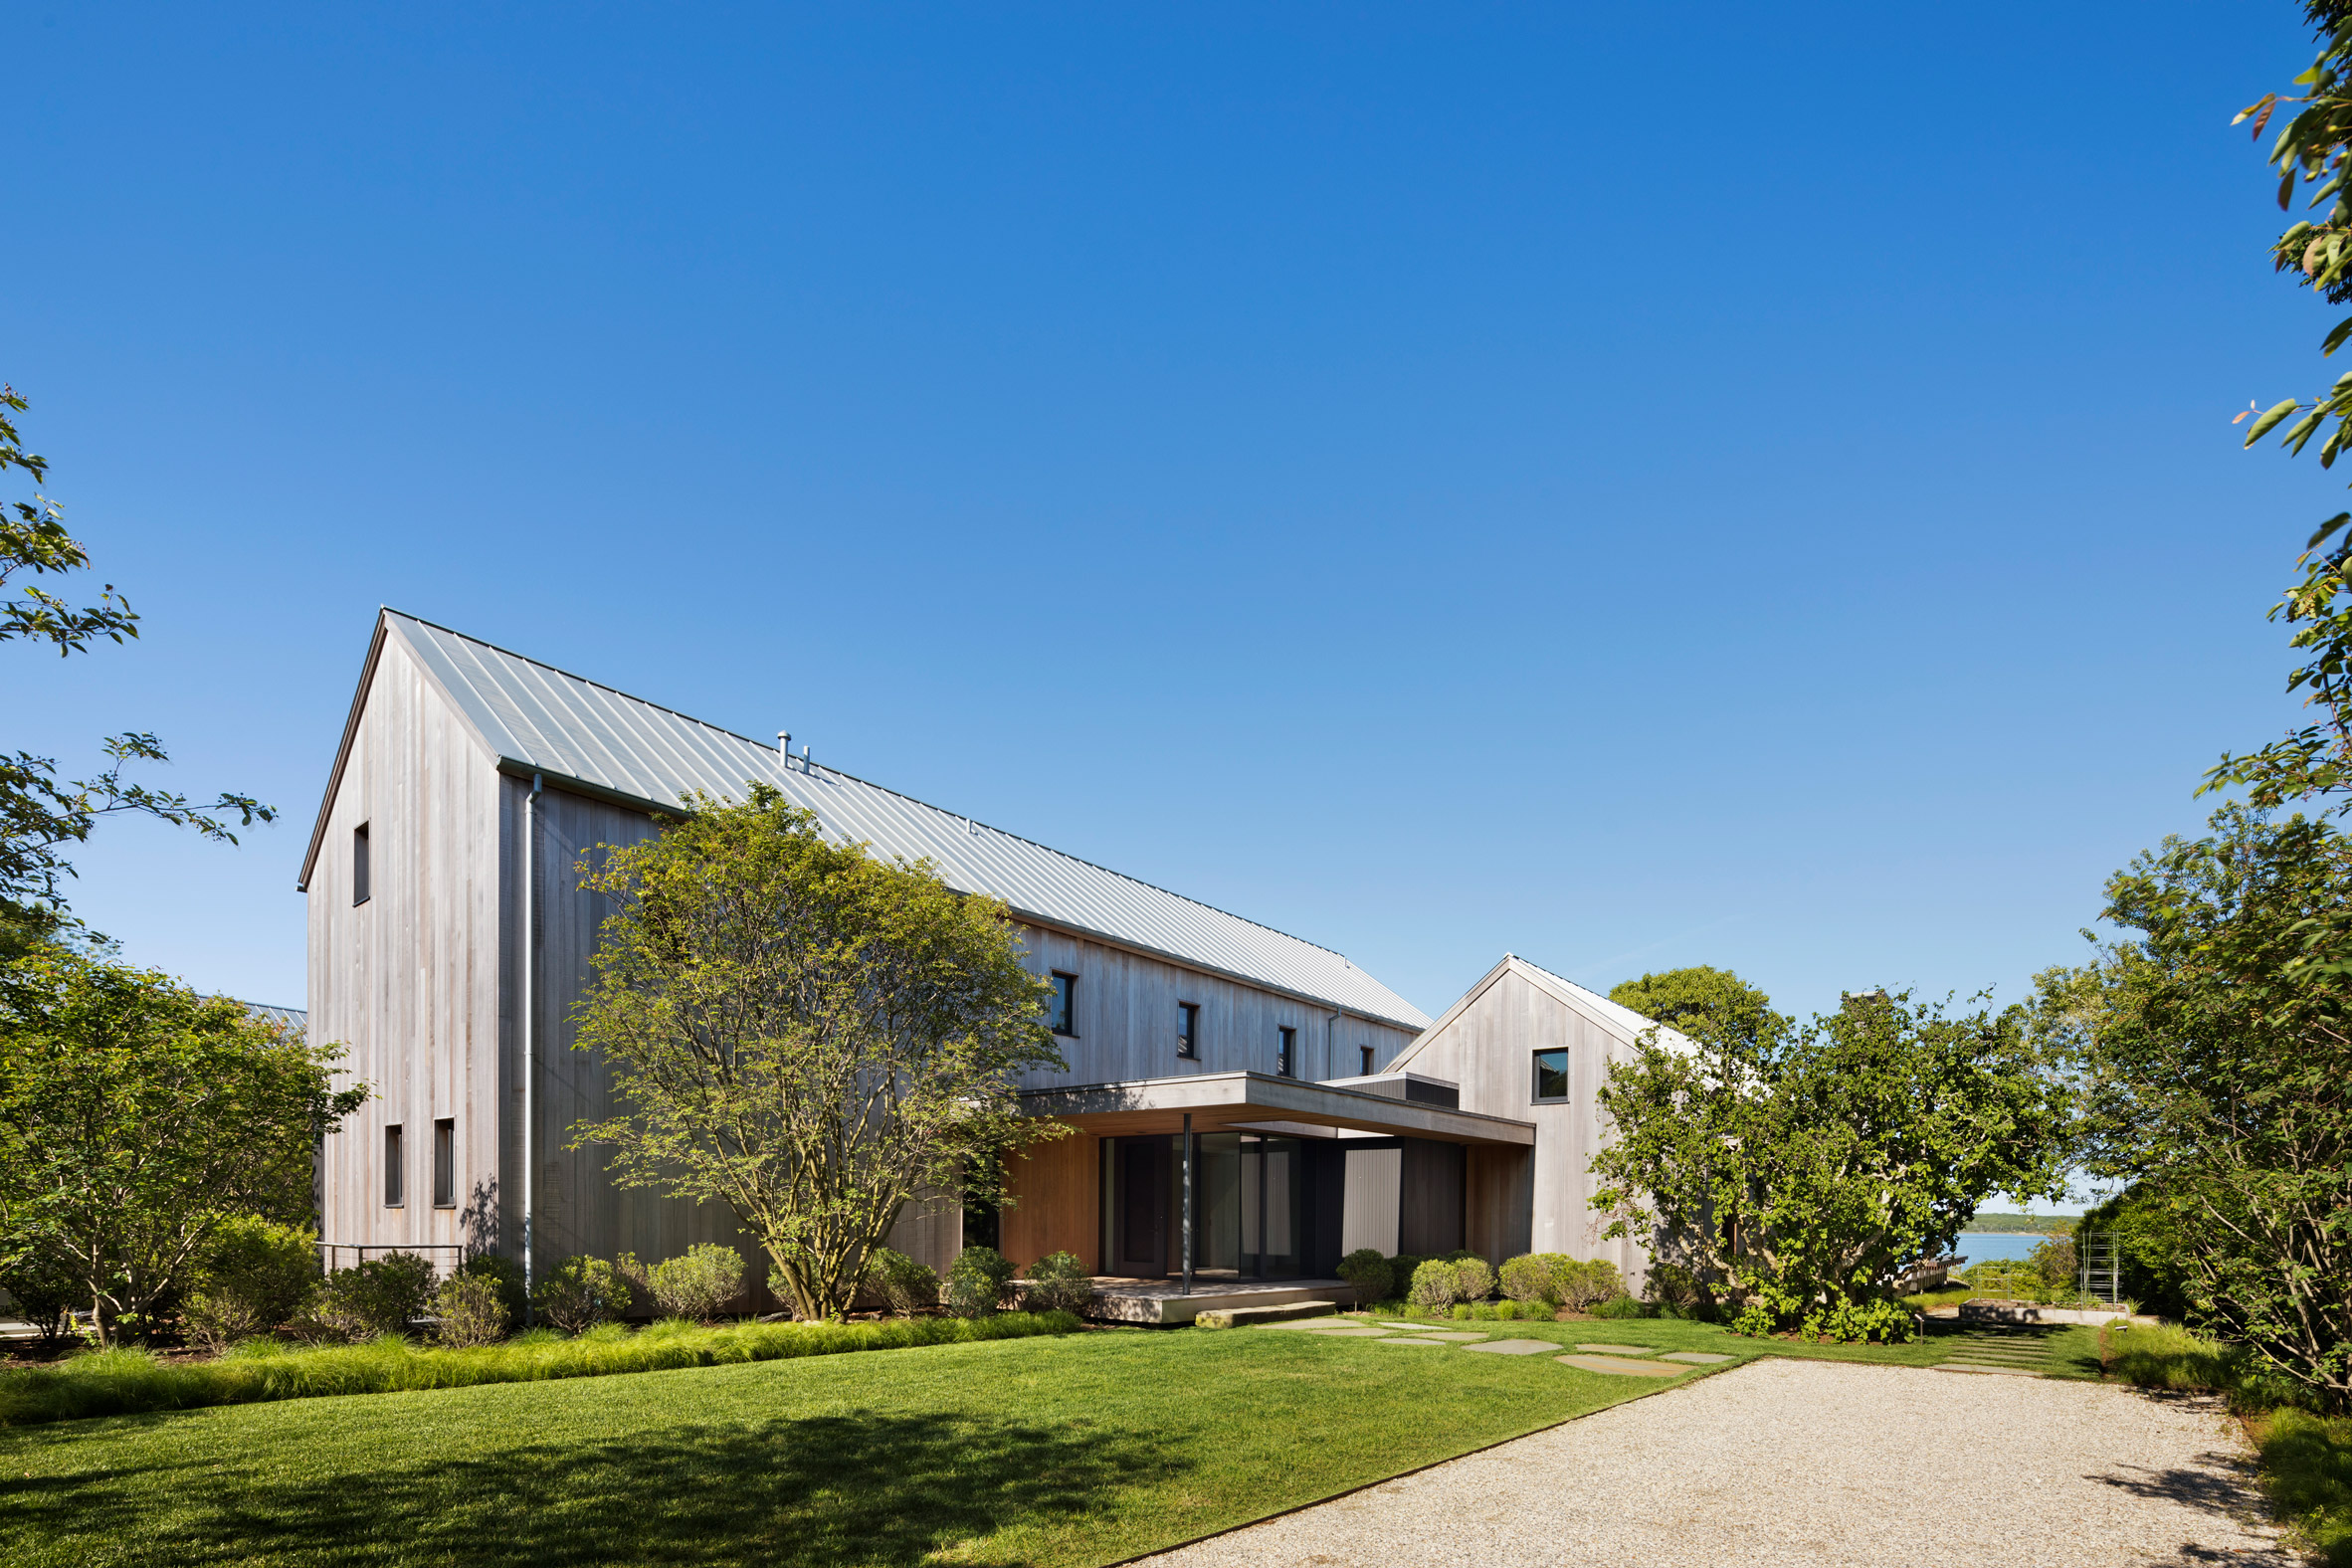 Robert Young's East Lake House in Montauk is designed to weather over time